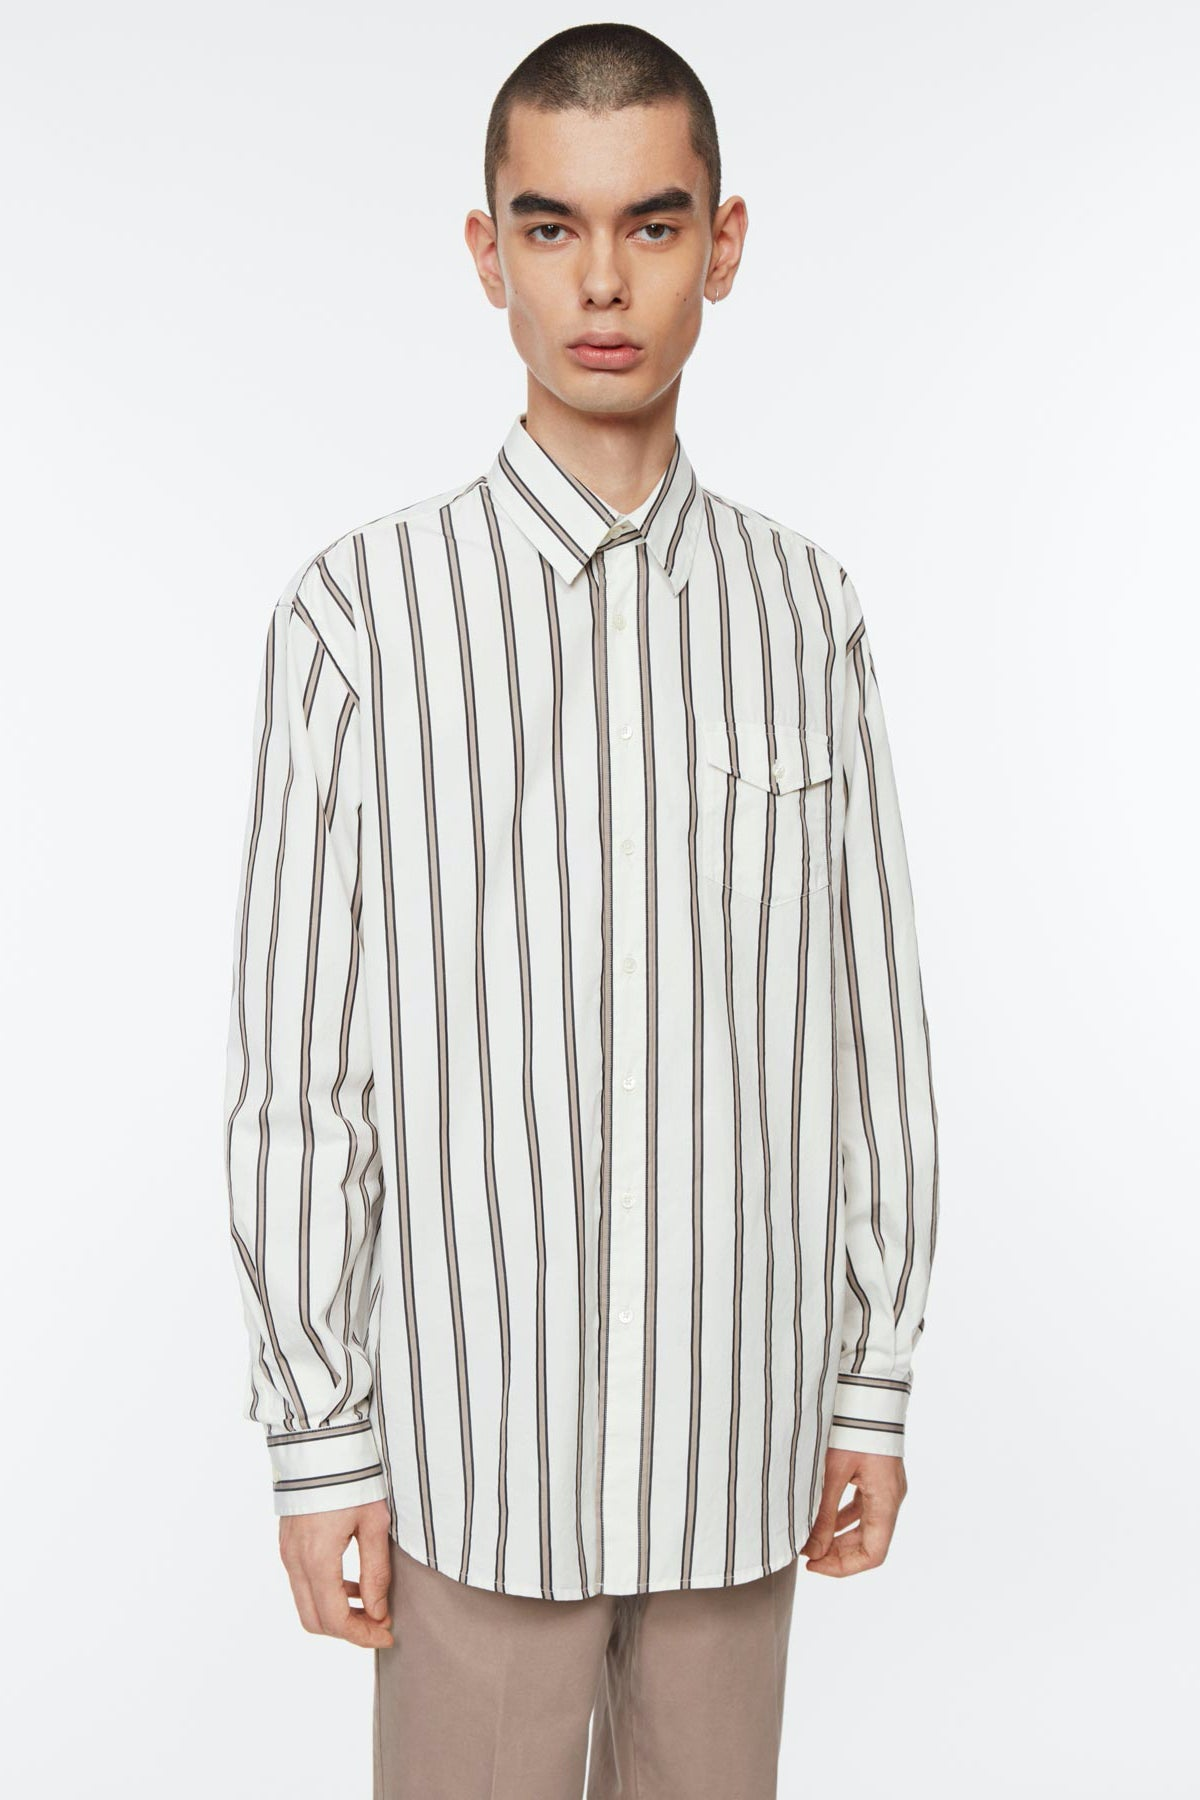 Shirt oversized poplin stripe white/black/khaki